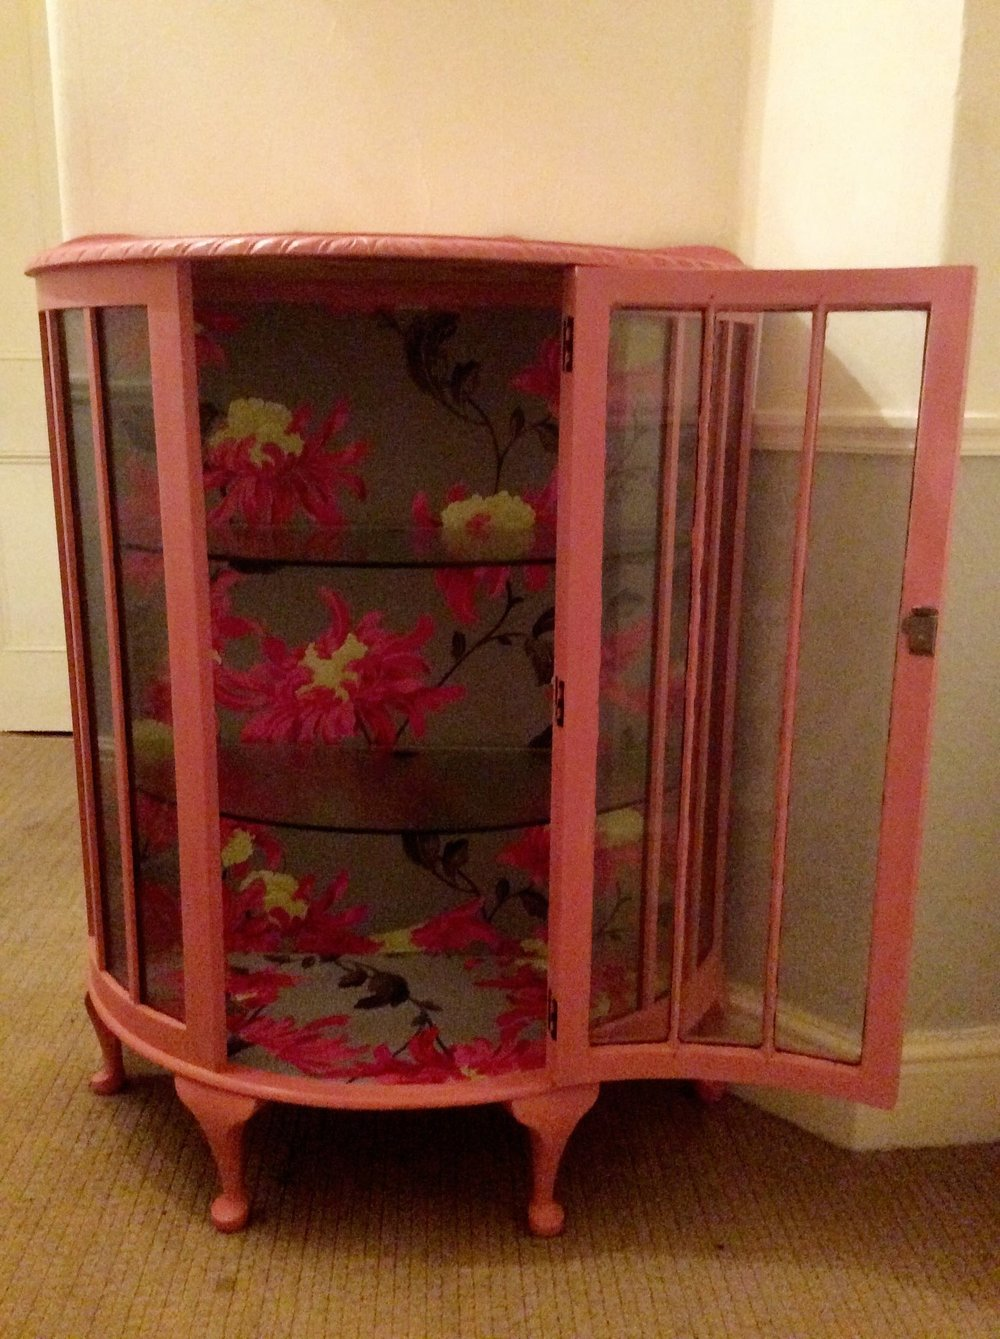 I wall papered the inside with a complimentary design.